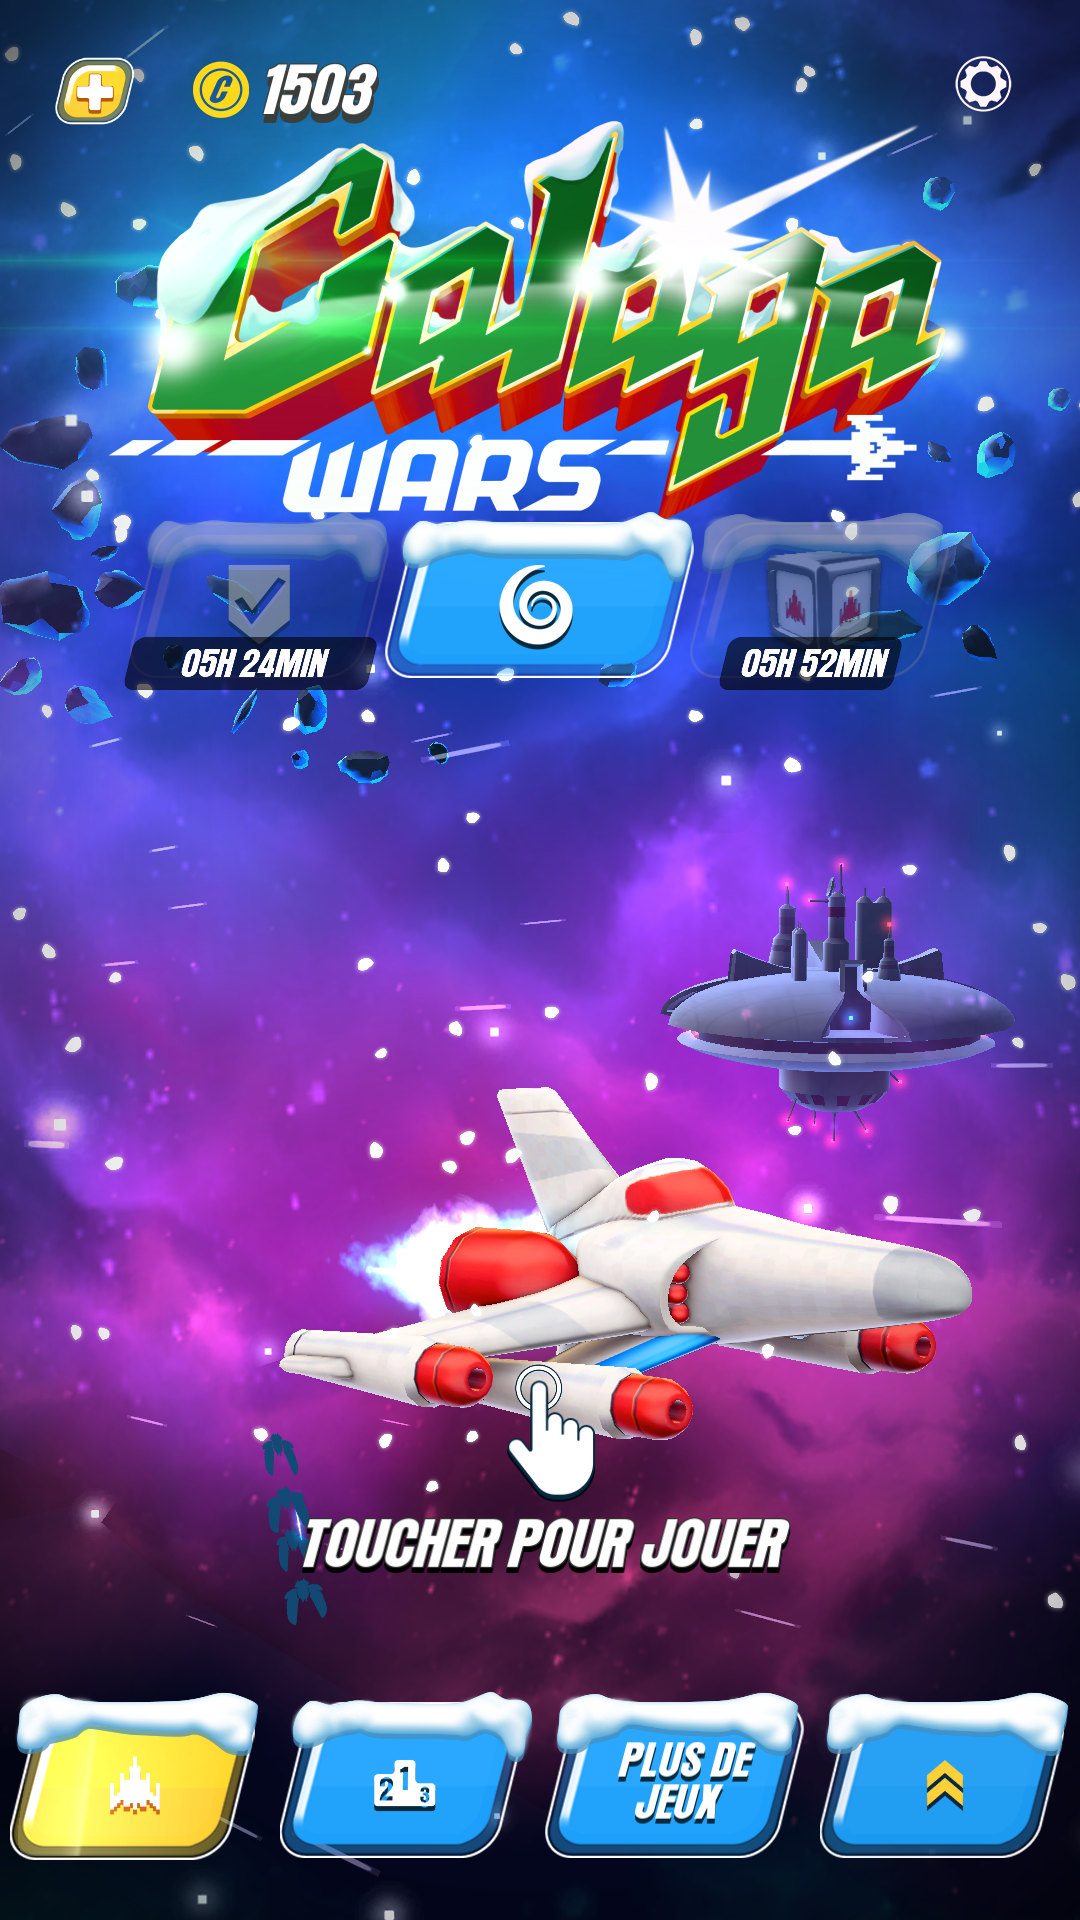 Mantalow: Galaga Wars [No Continue Allowed] (Android) 1,154,763 points on 2017-01-01 08:48:26